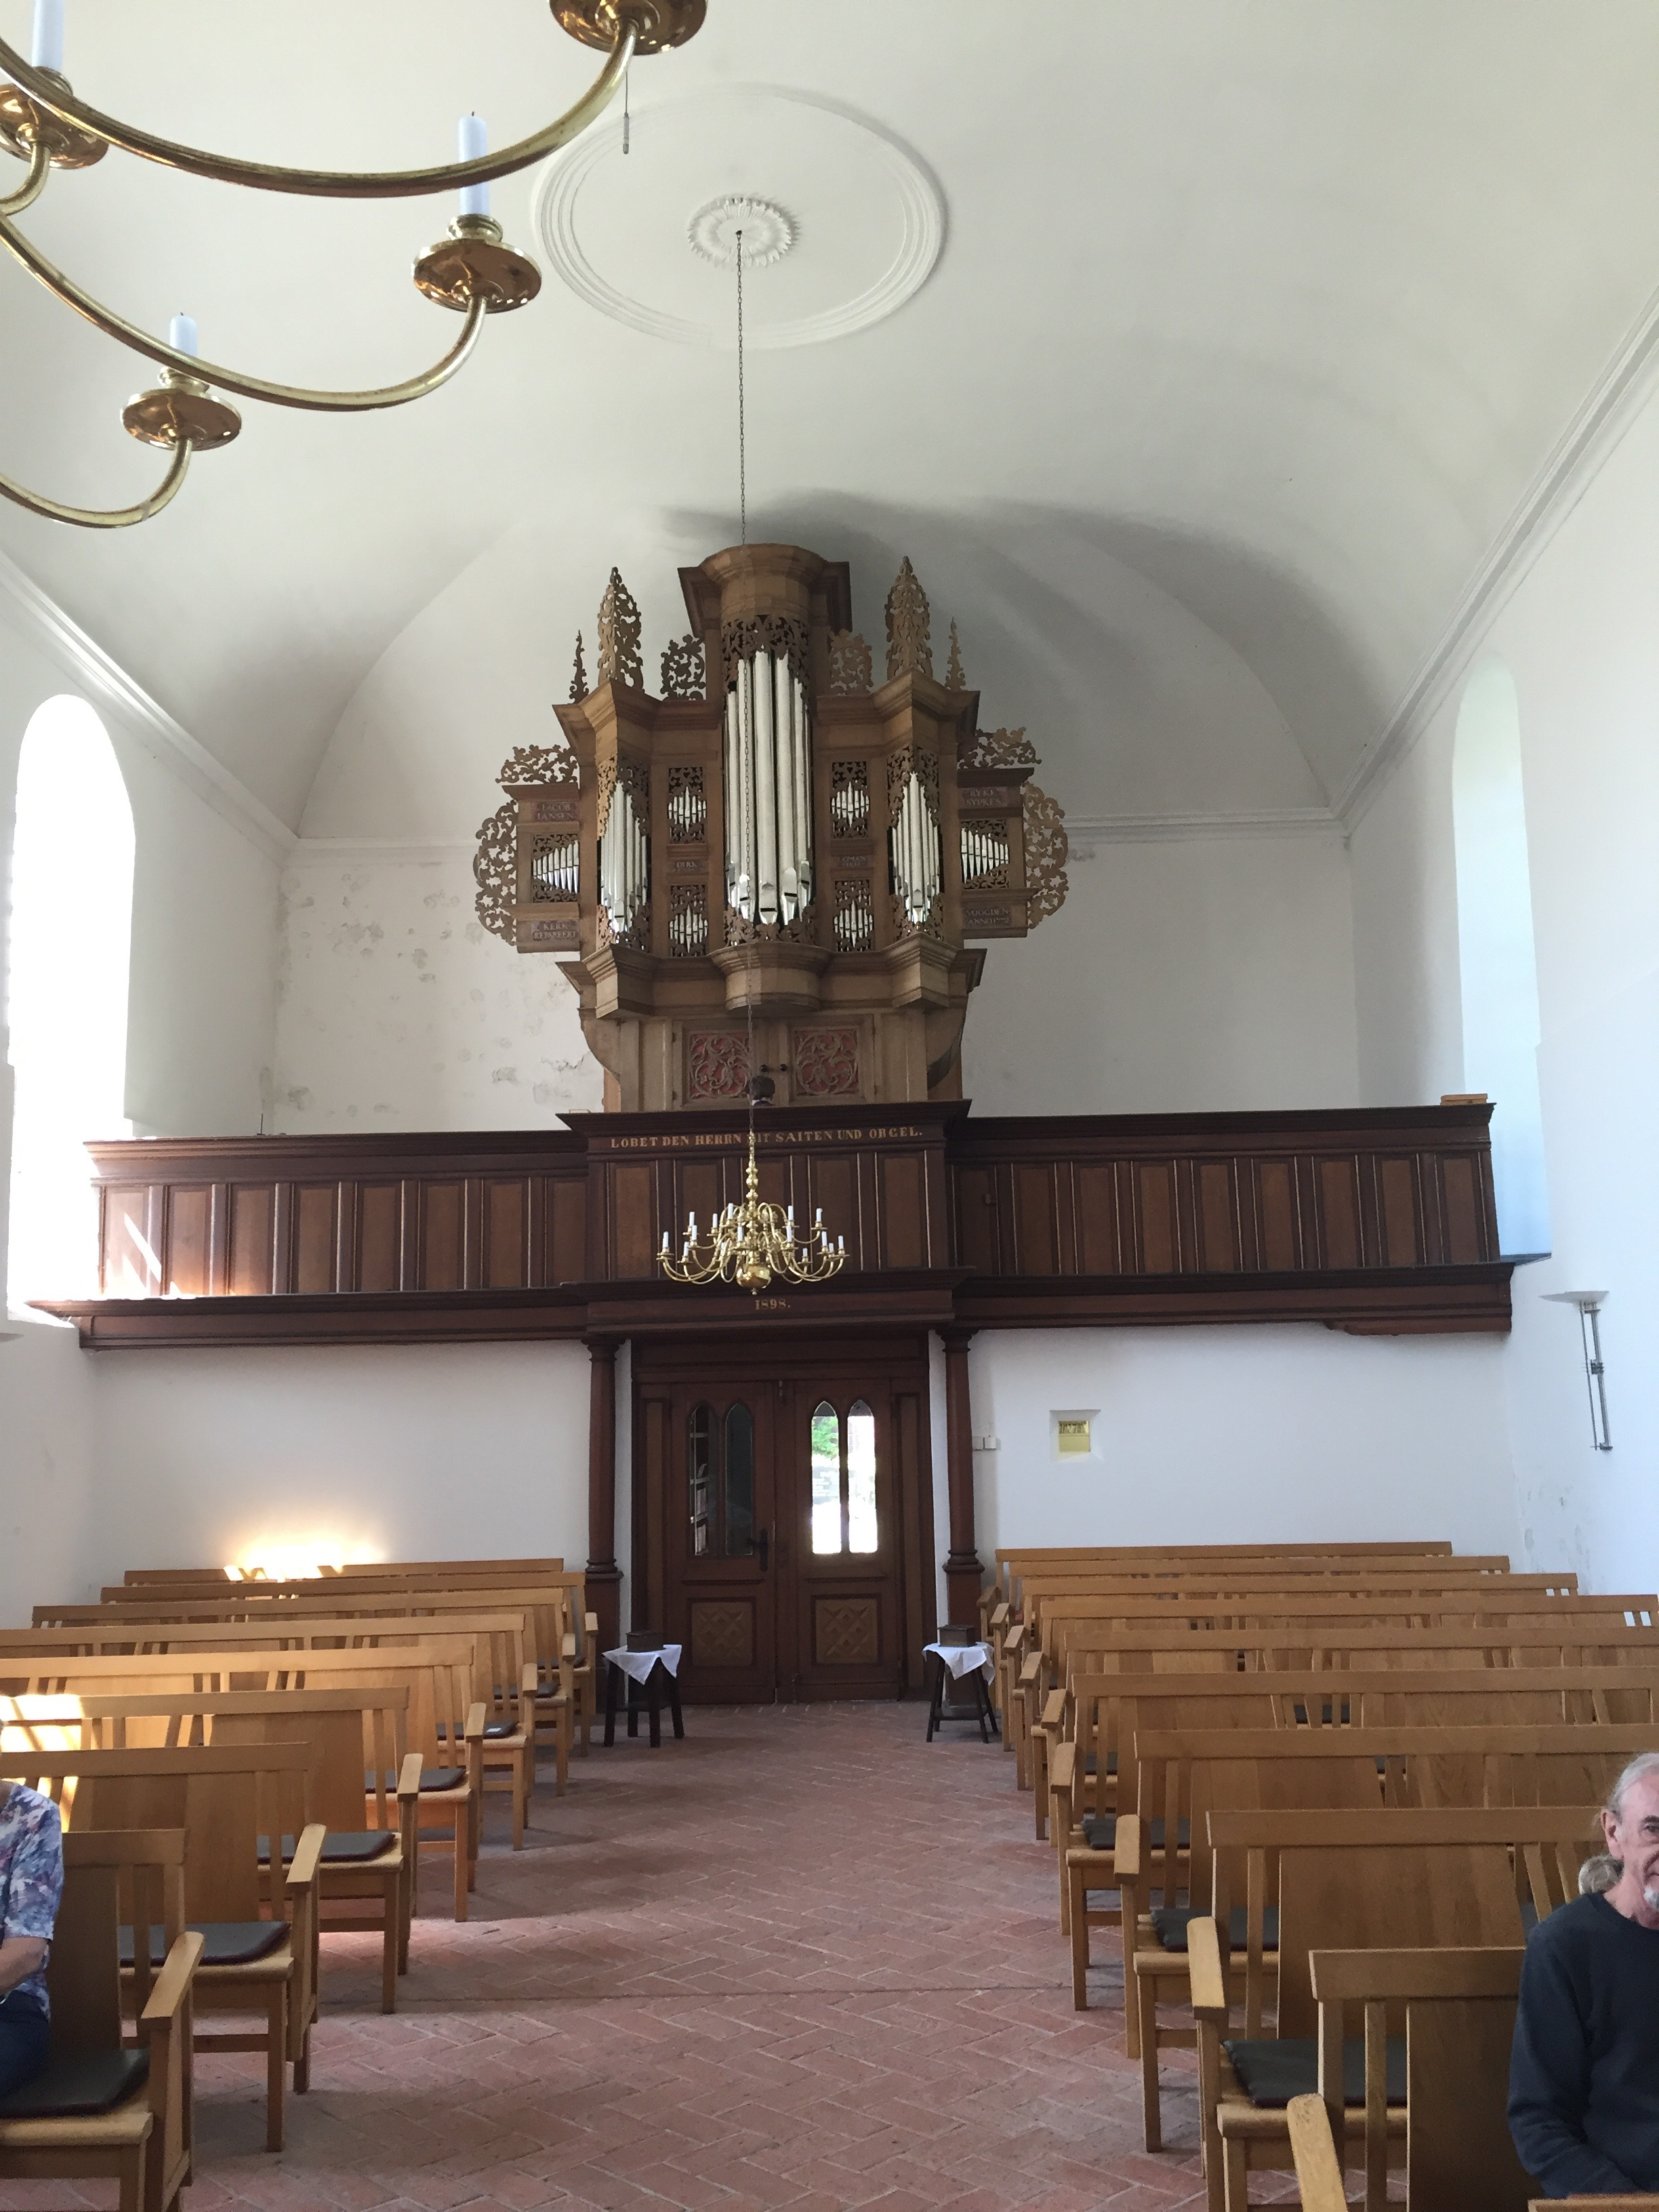 Thiemo Janssen, our Norden host, gives us a brief overview of the Grotjan organ in Pilsum.